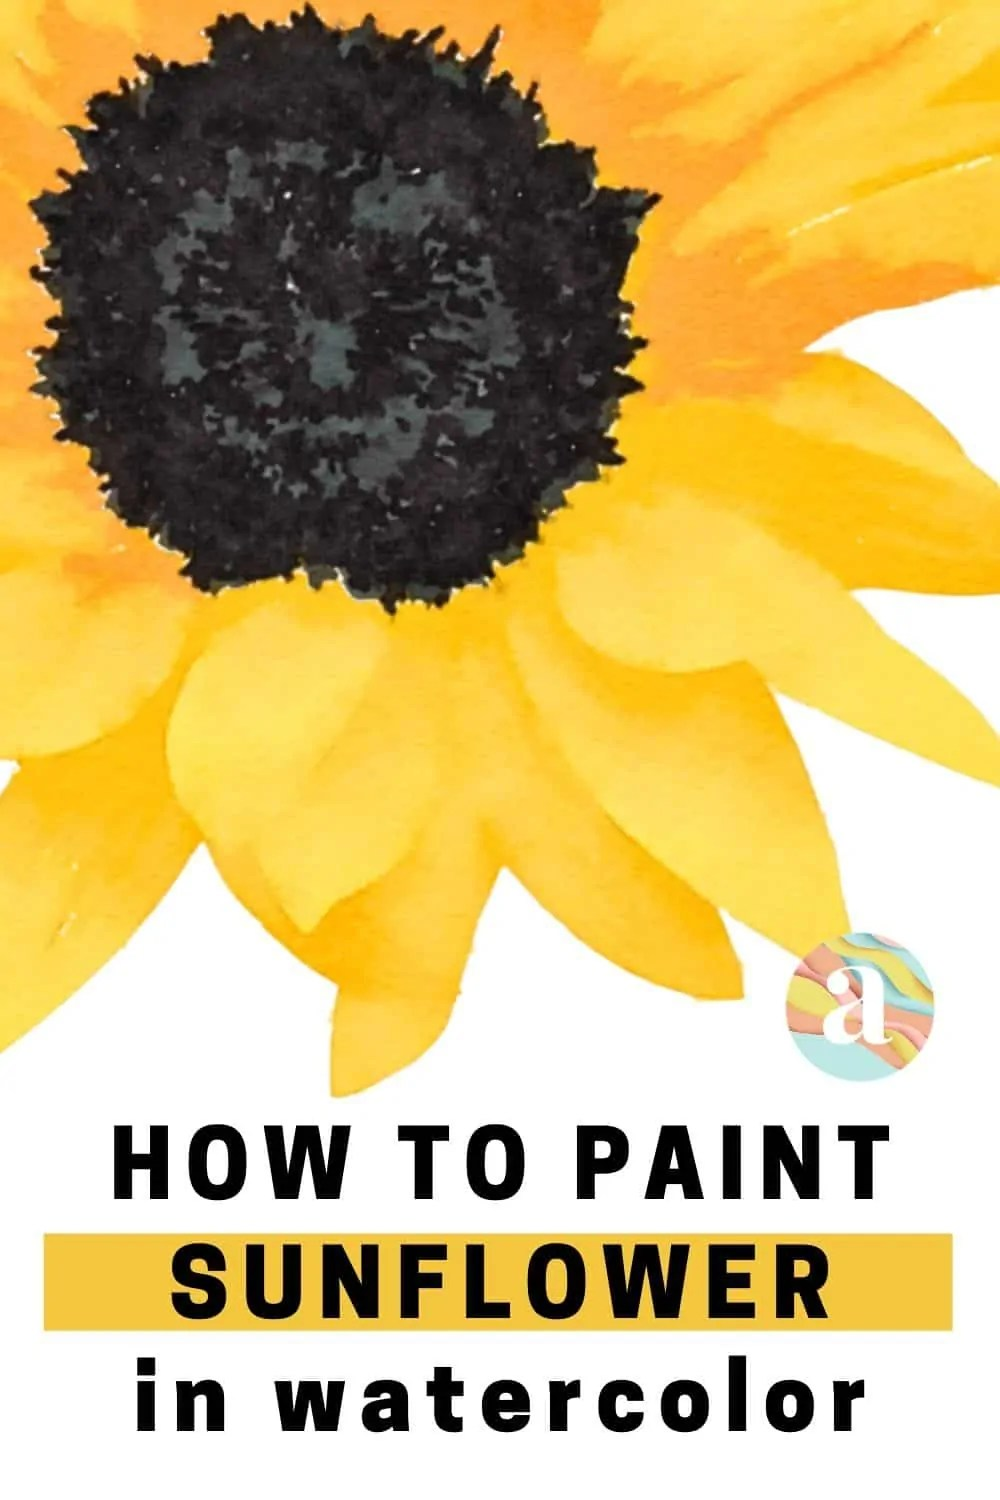 how to paint sunflower in watercolor